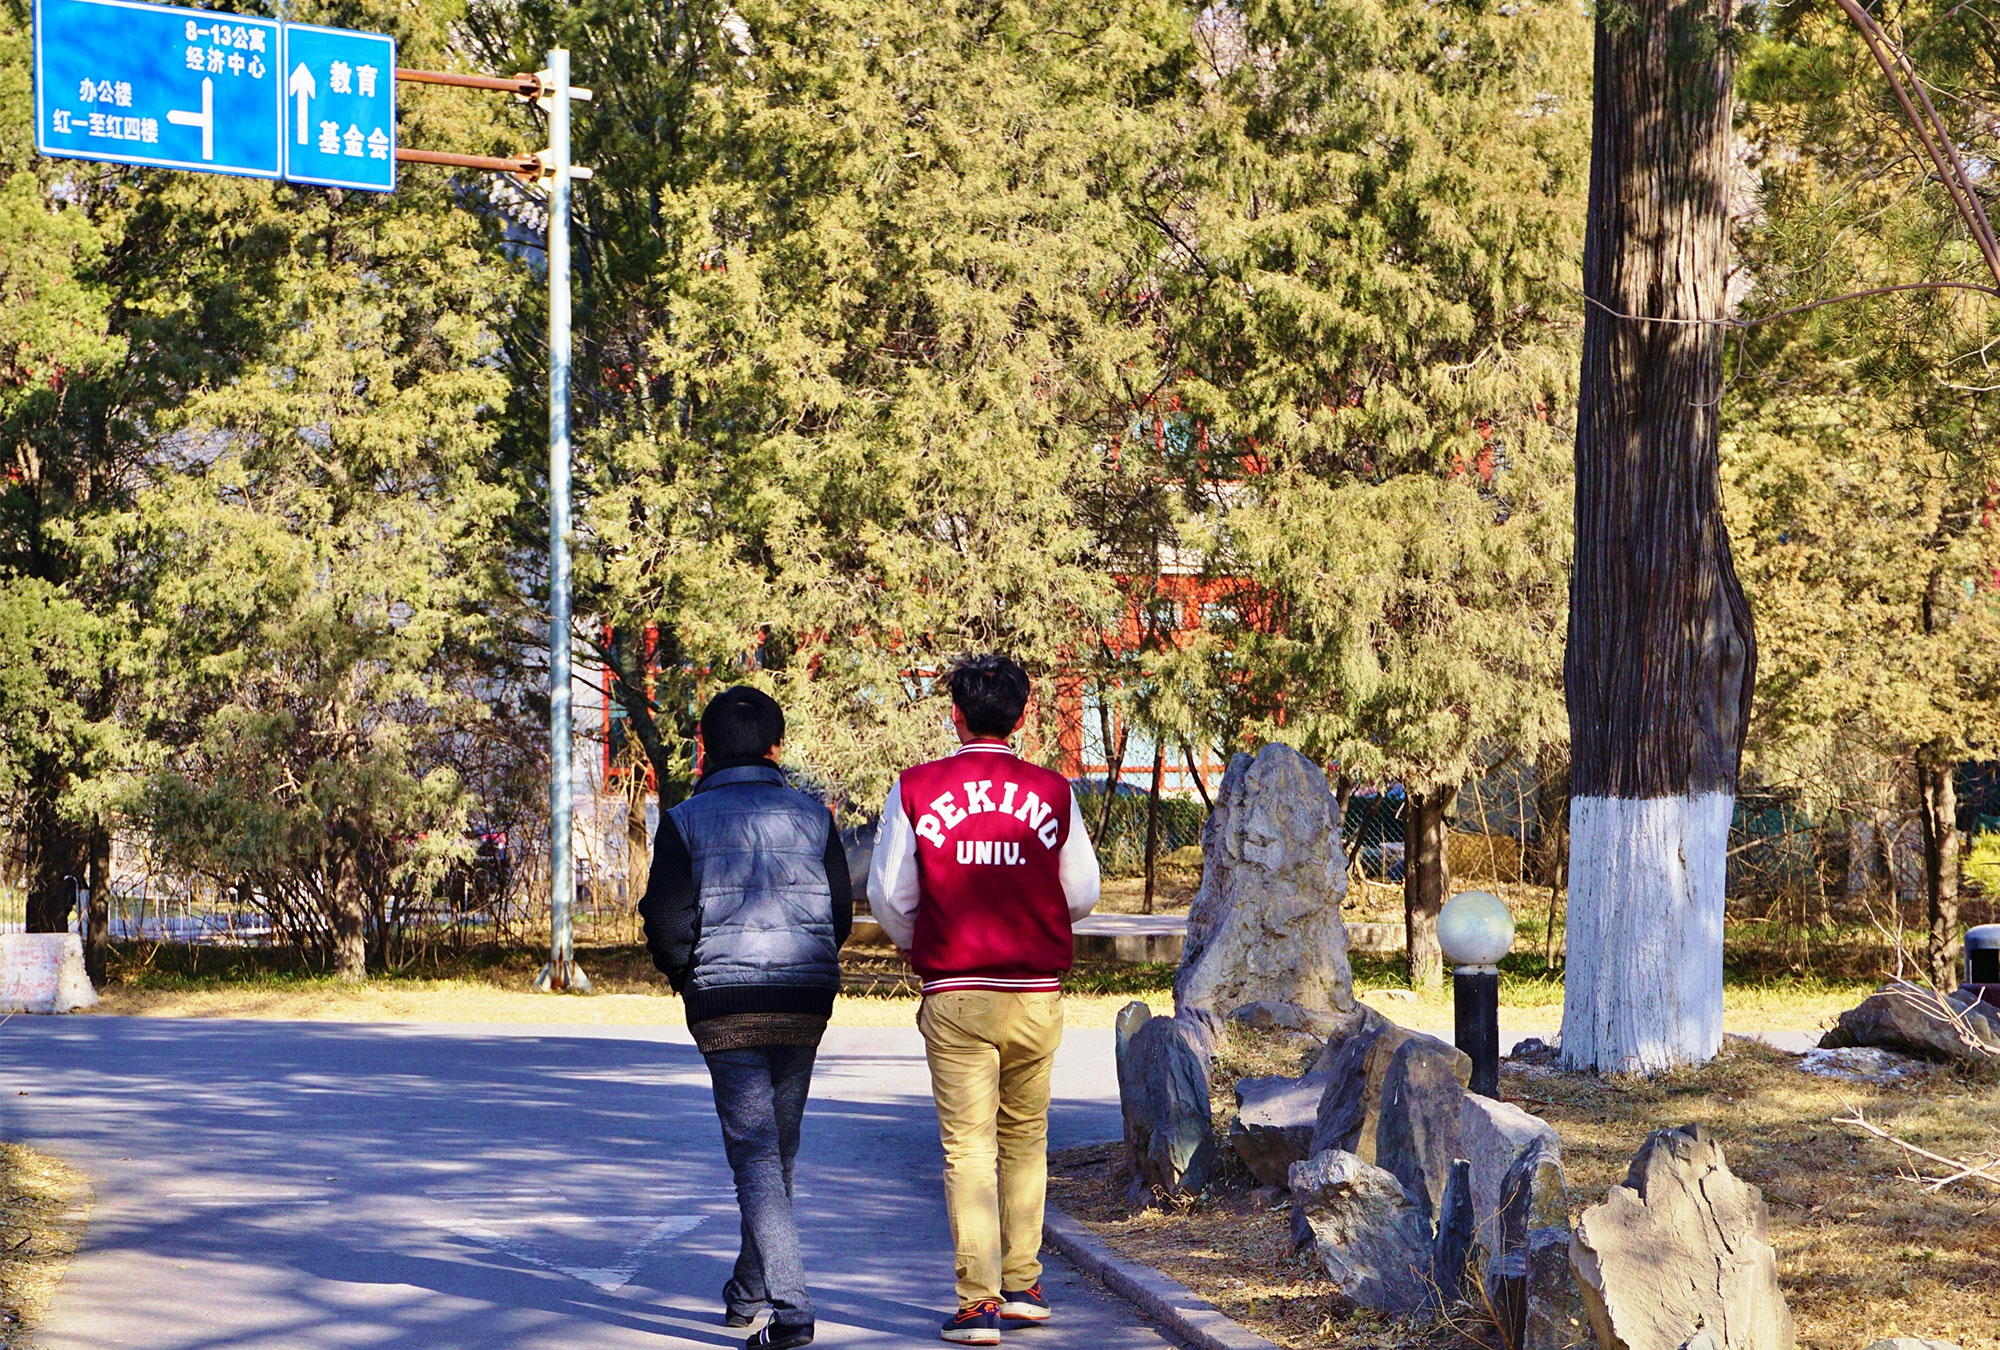 Two students walking: one's jacket reads 'Peking U""